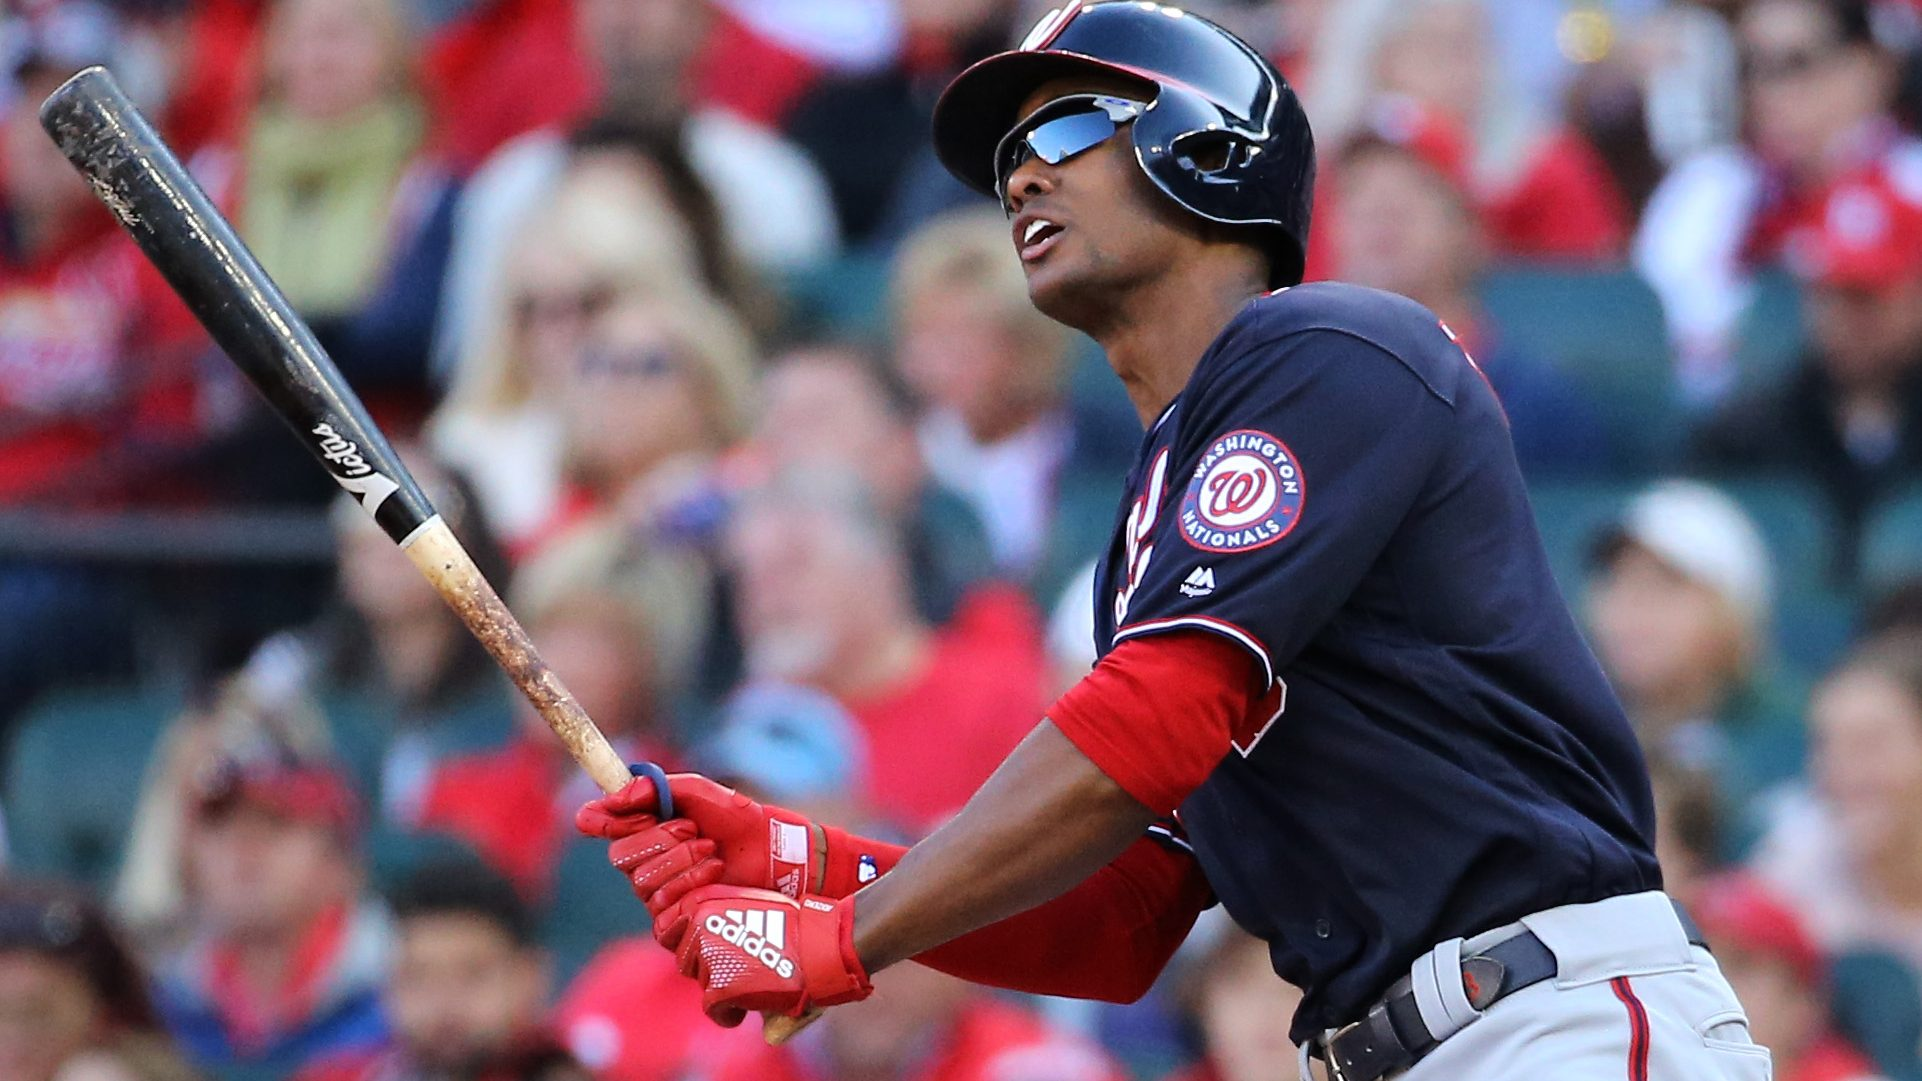 Michael A. Taylor avoids arbitration with Nationals thanks to one-year, $3.325 million deal